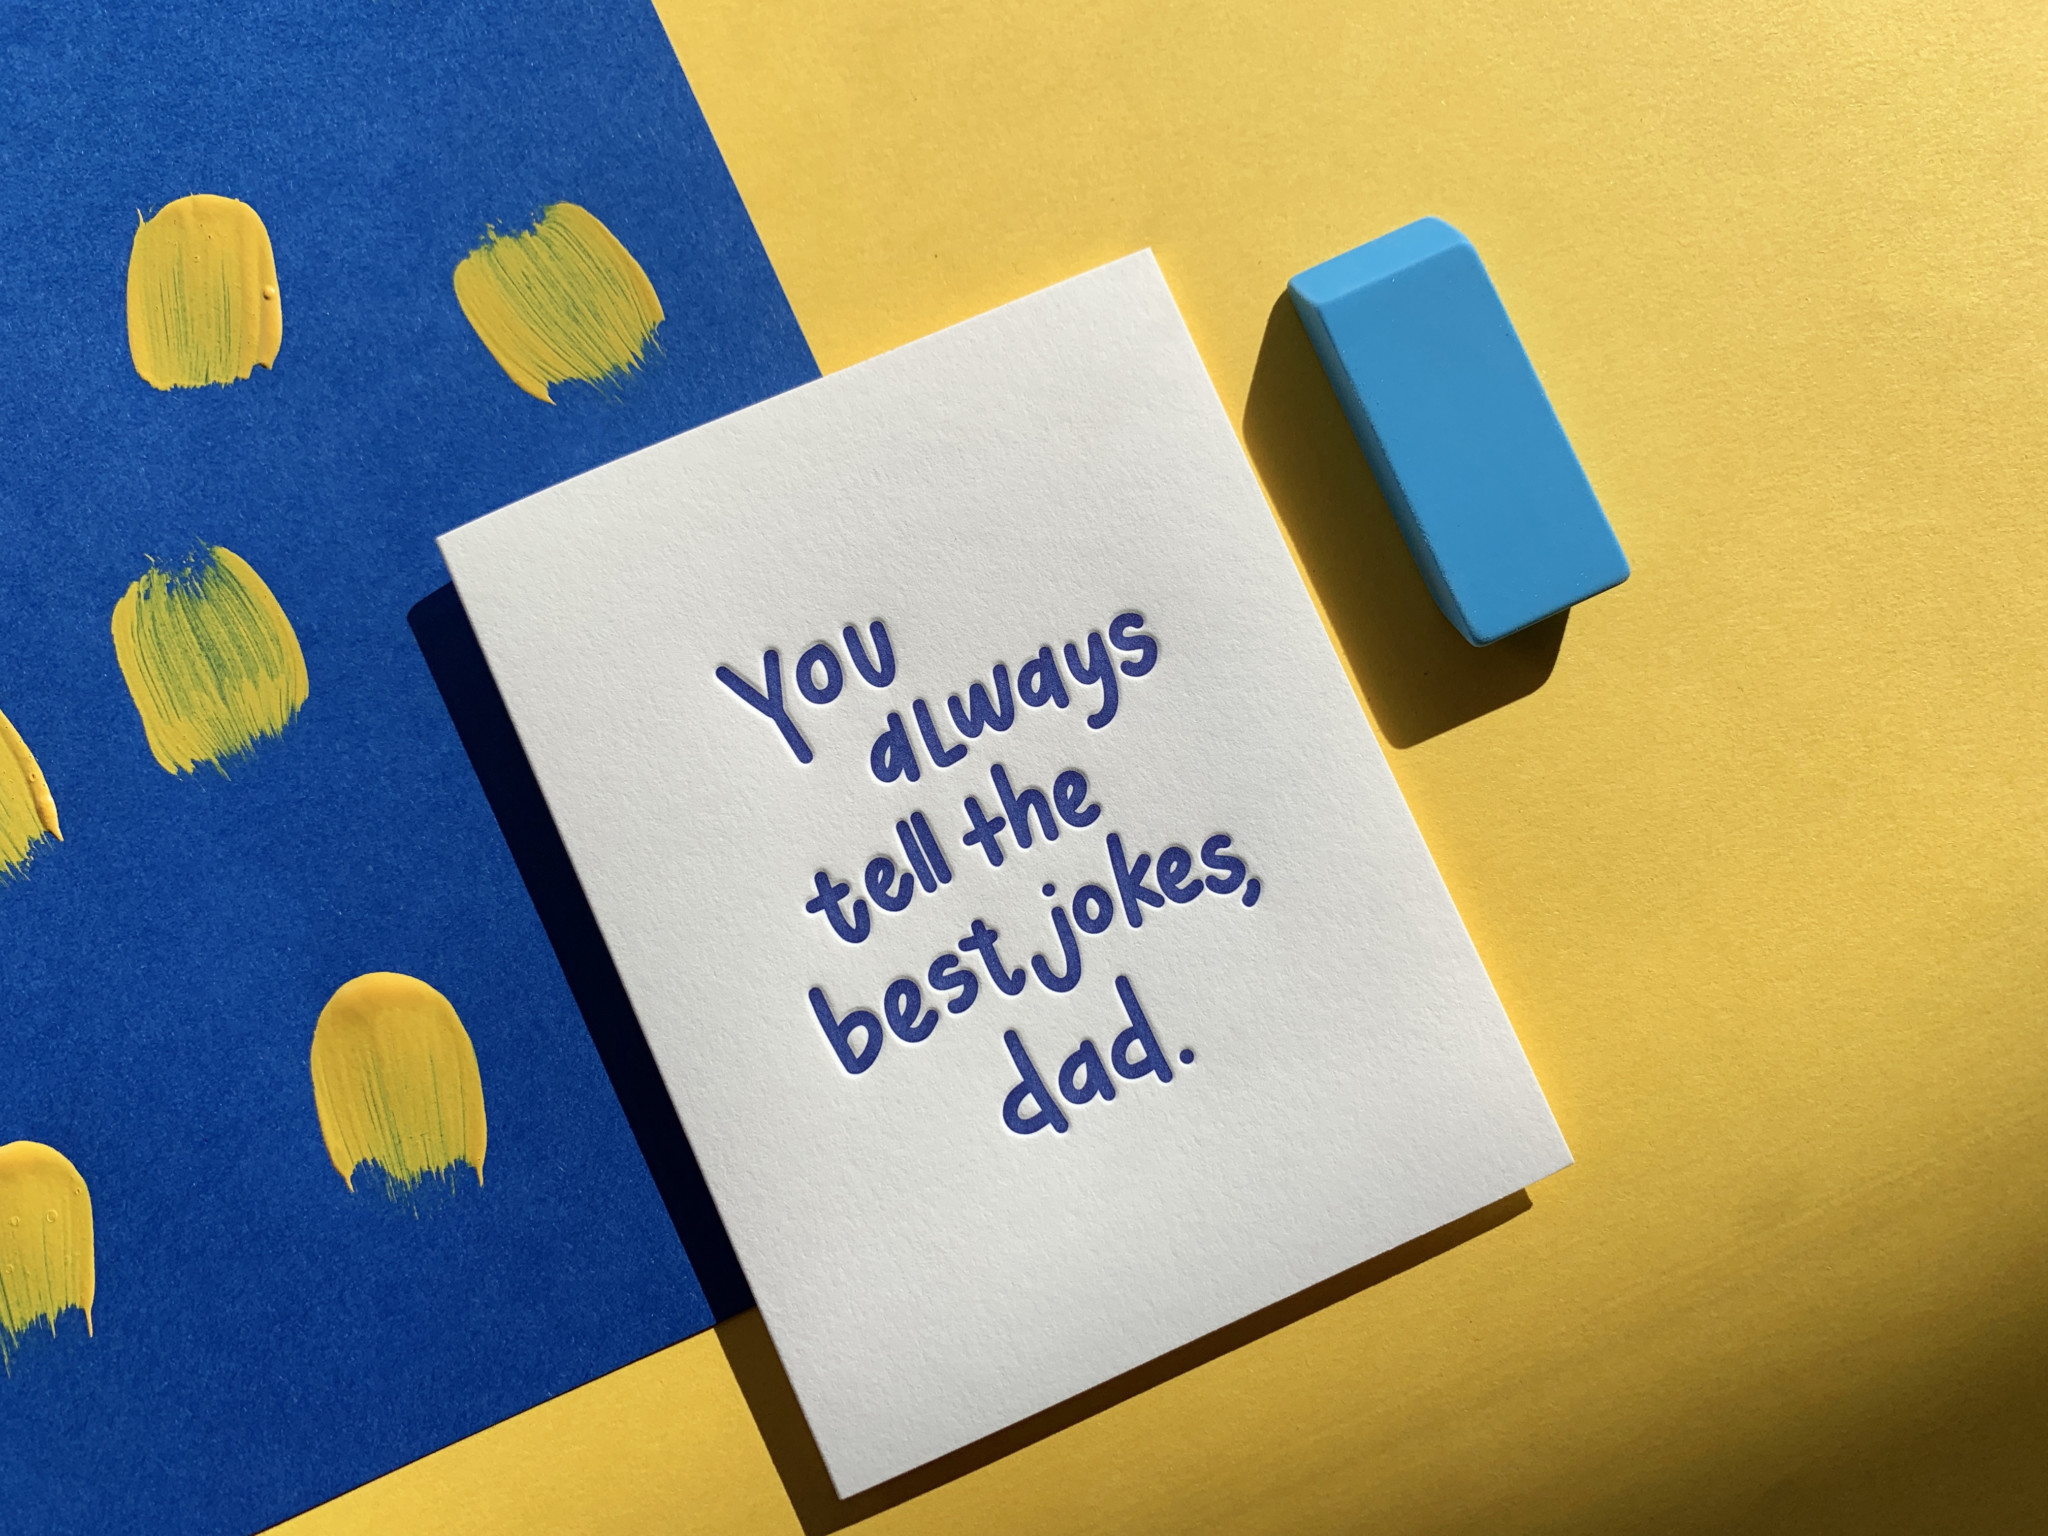 You always tell the best jokes, Dad -- Letterpress card on yellow and blue layered paper background with eraser accent